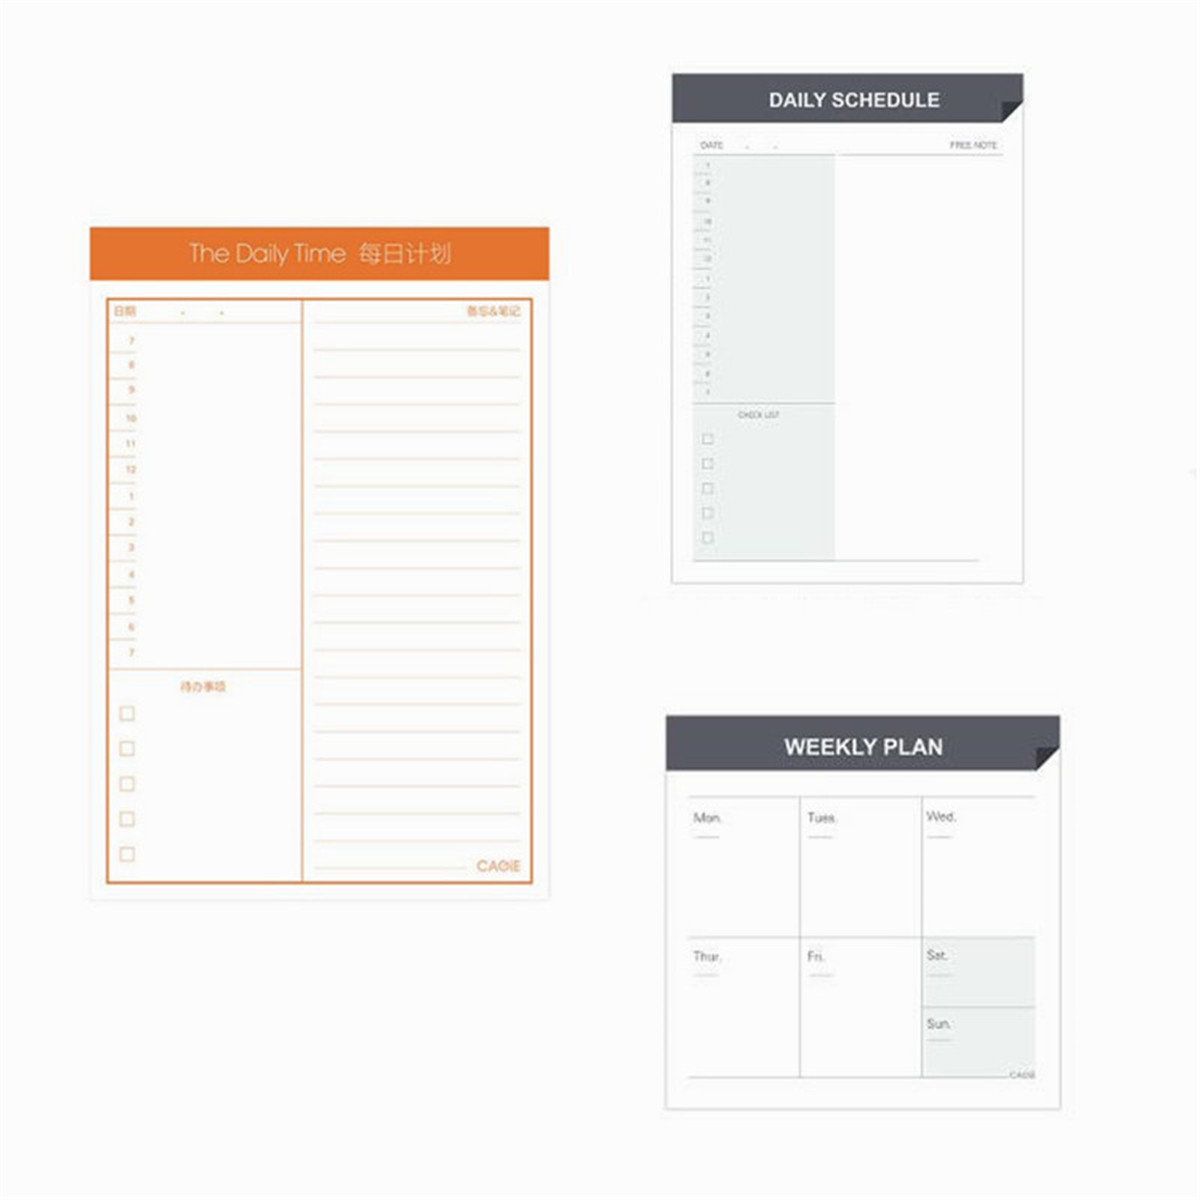 Monthly Weekly Daily Journal Schedule Planner NotePad Organizer Check List #BY5